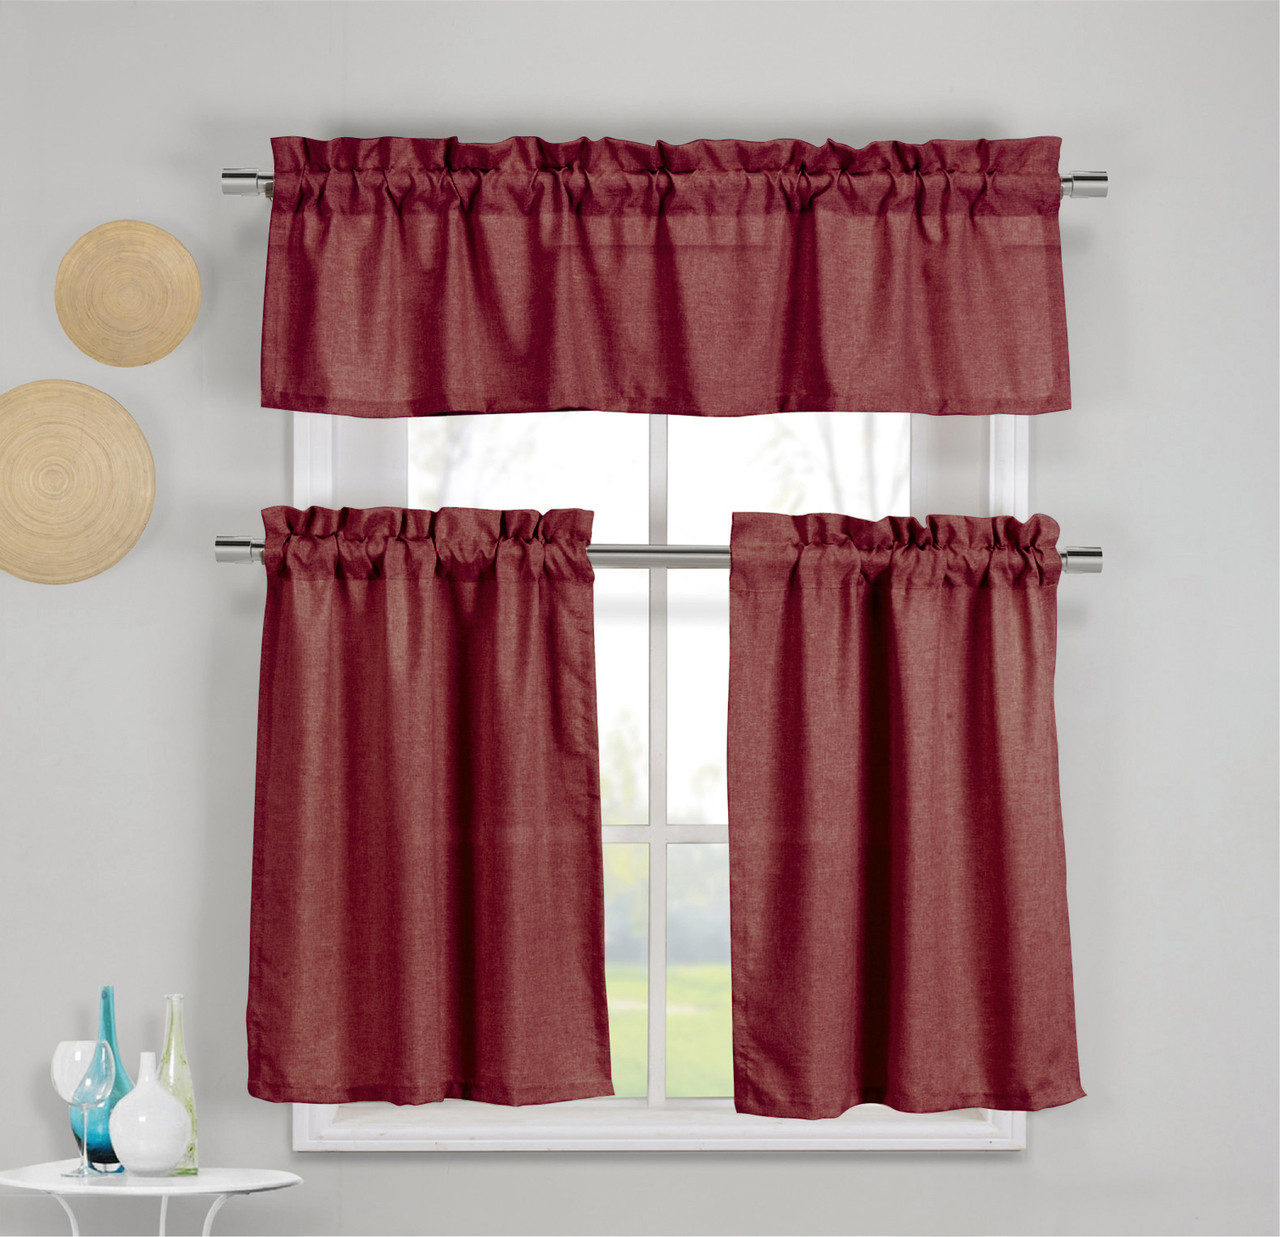 3 Piece Faux Cotton Wine Red Kitchen Window Curtain Panel Set With 1